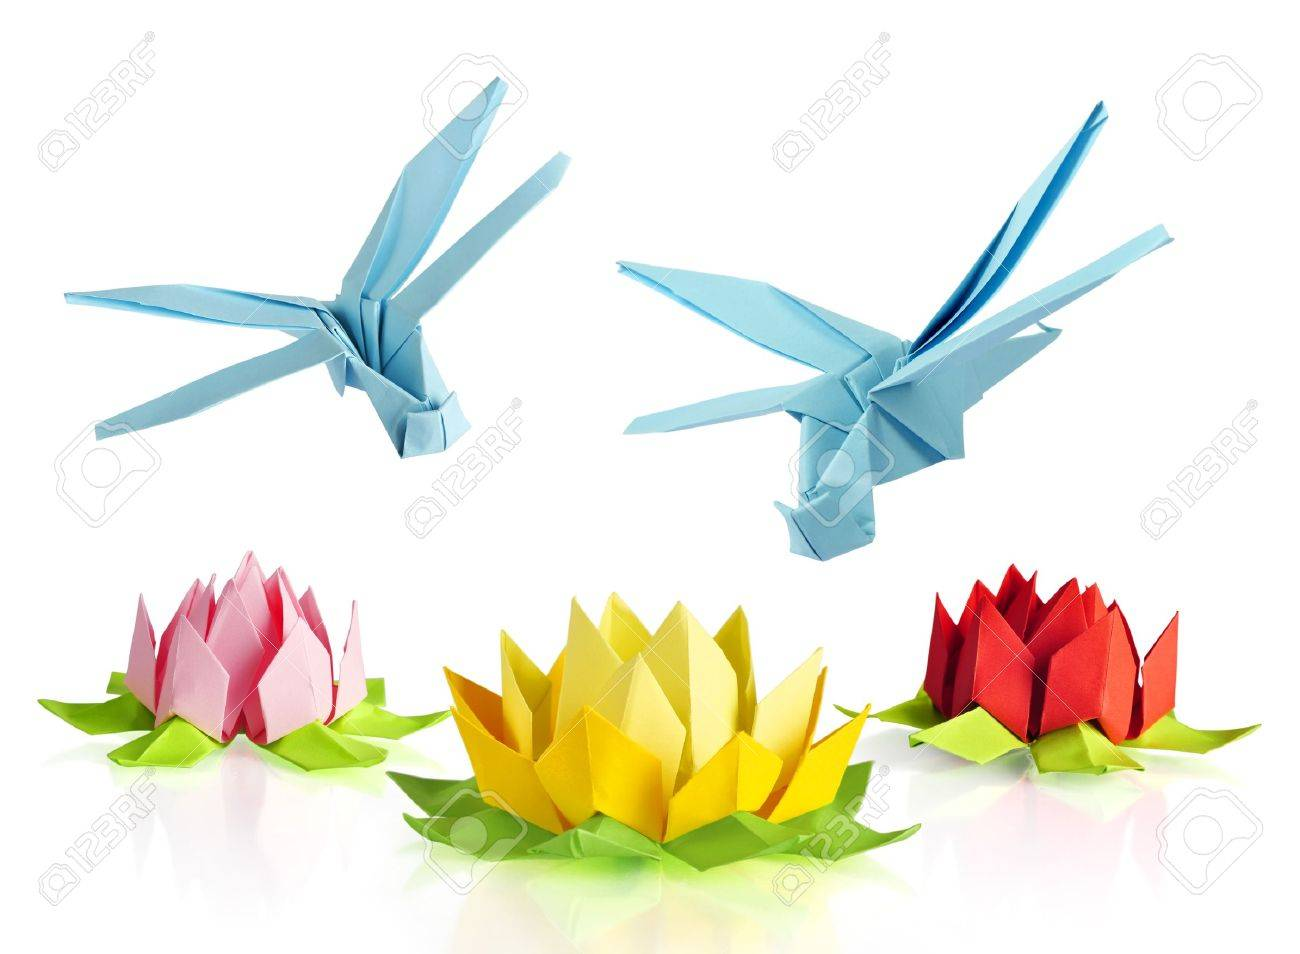 Origami - How to make a Lotus Flower - YouTube | 954x1300